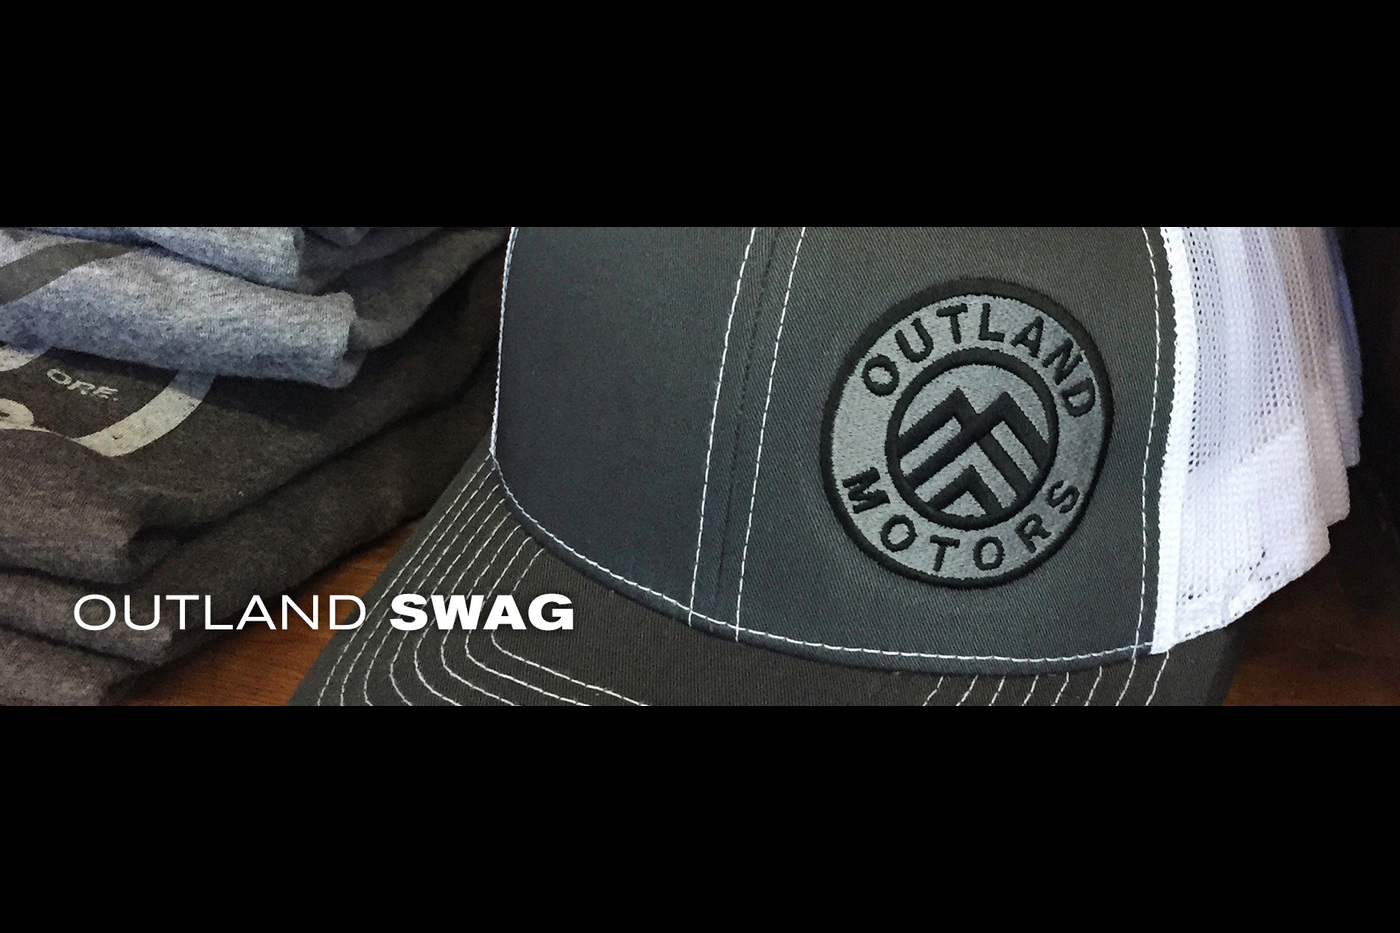 Outland_web_swag_4